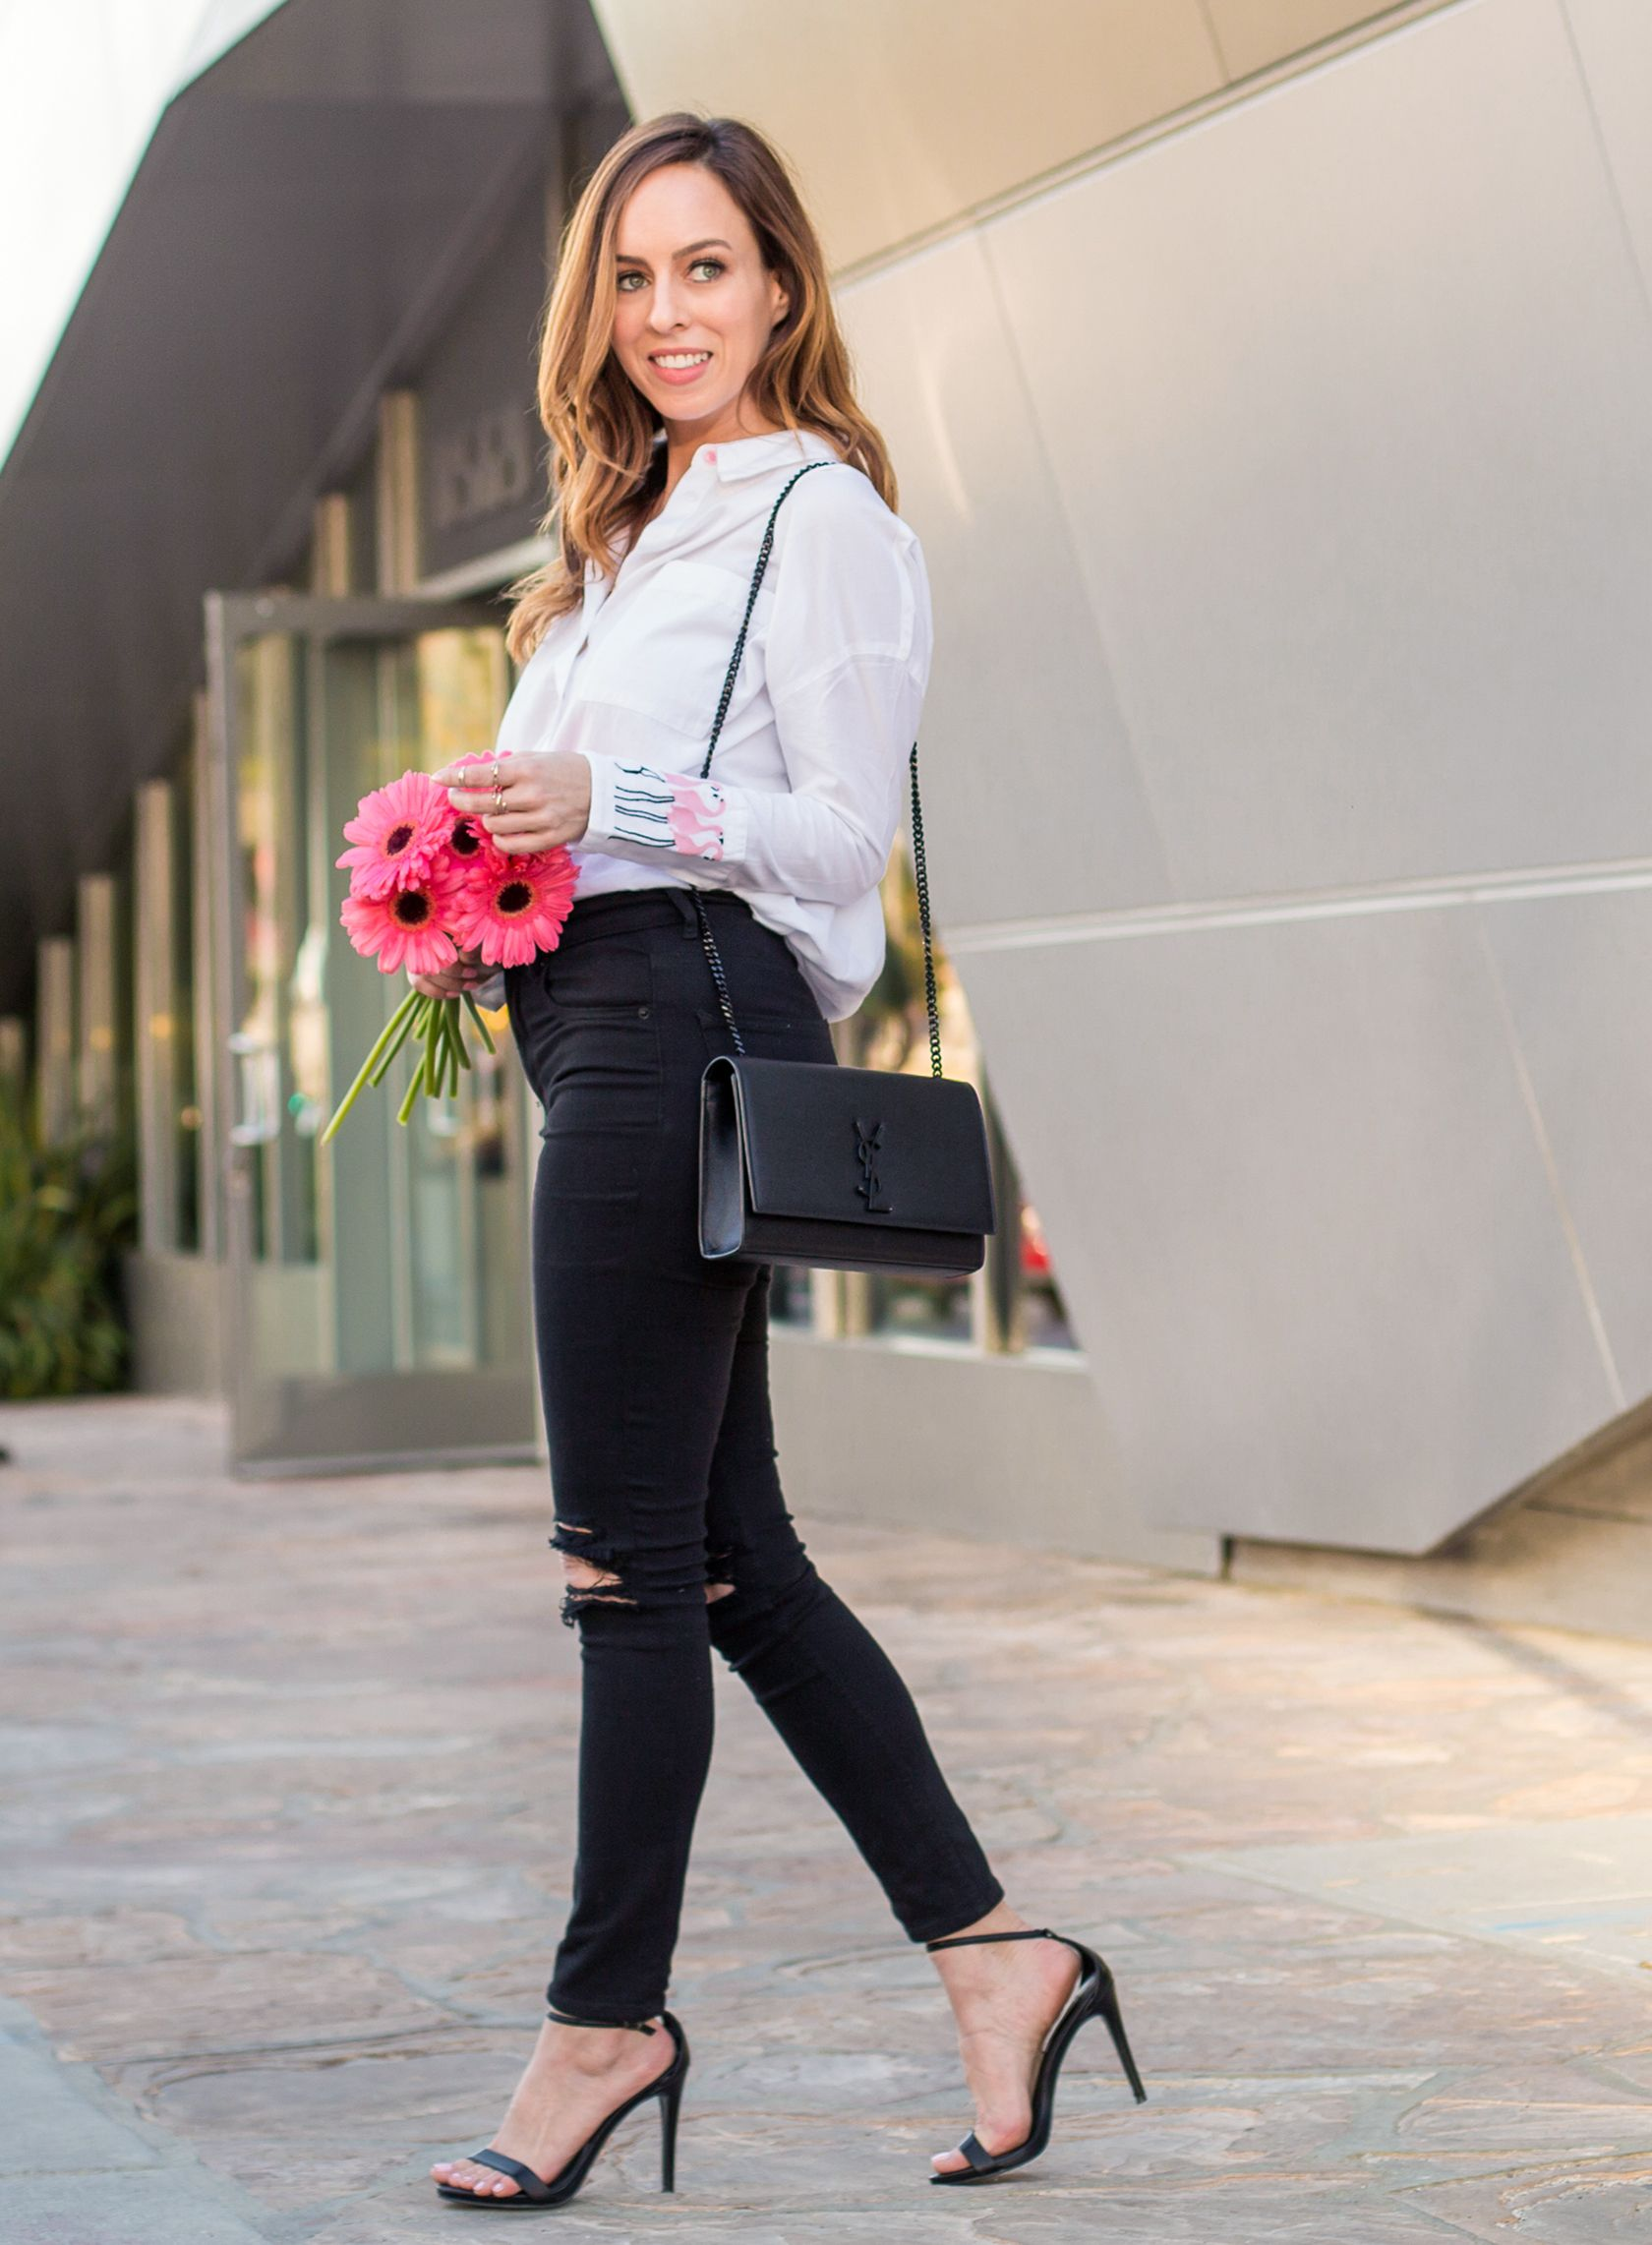 4c00f933ac Sydne Style - Los Angeles fashion blogger Sydne Summer Miami-styles  Flamingo Shirts for Casual Friday. Shop the looks online!